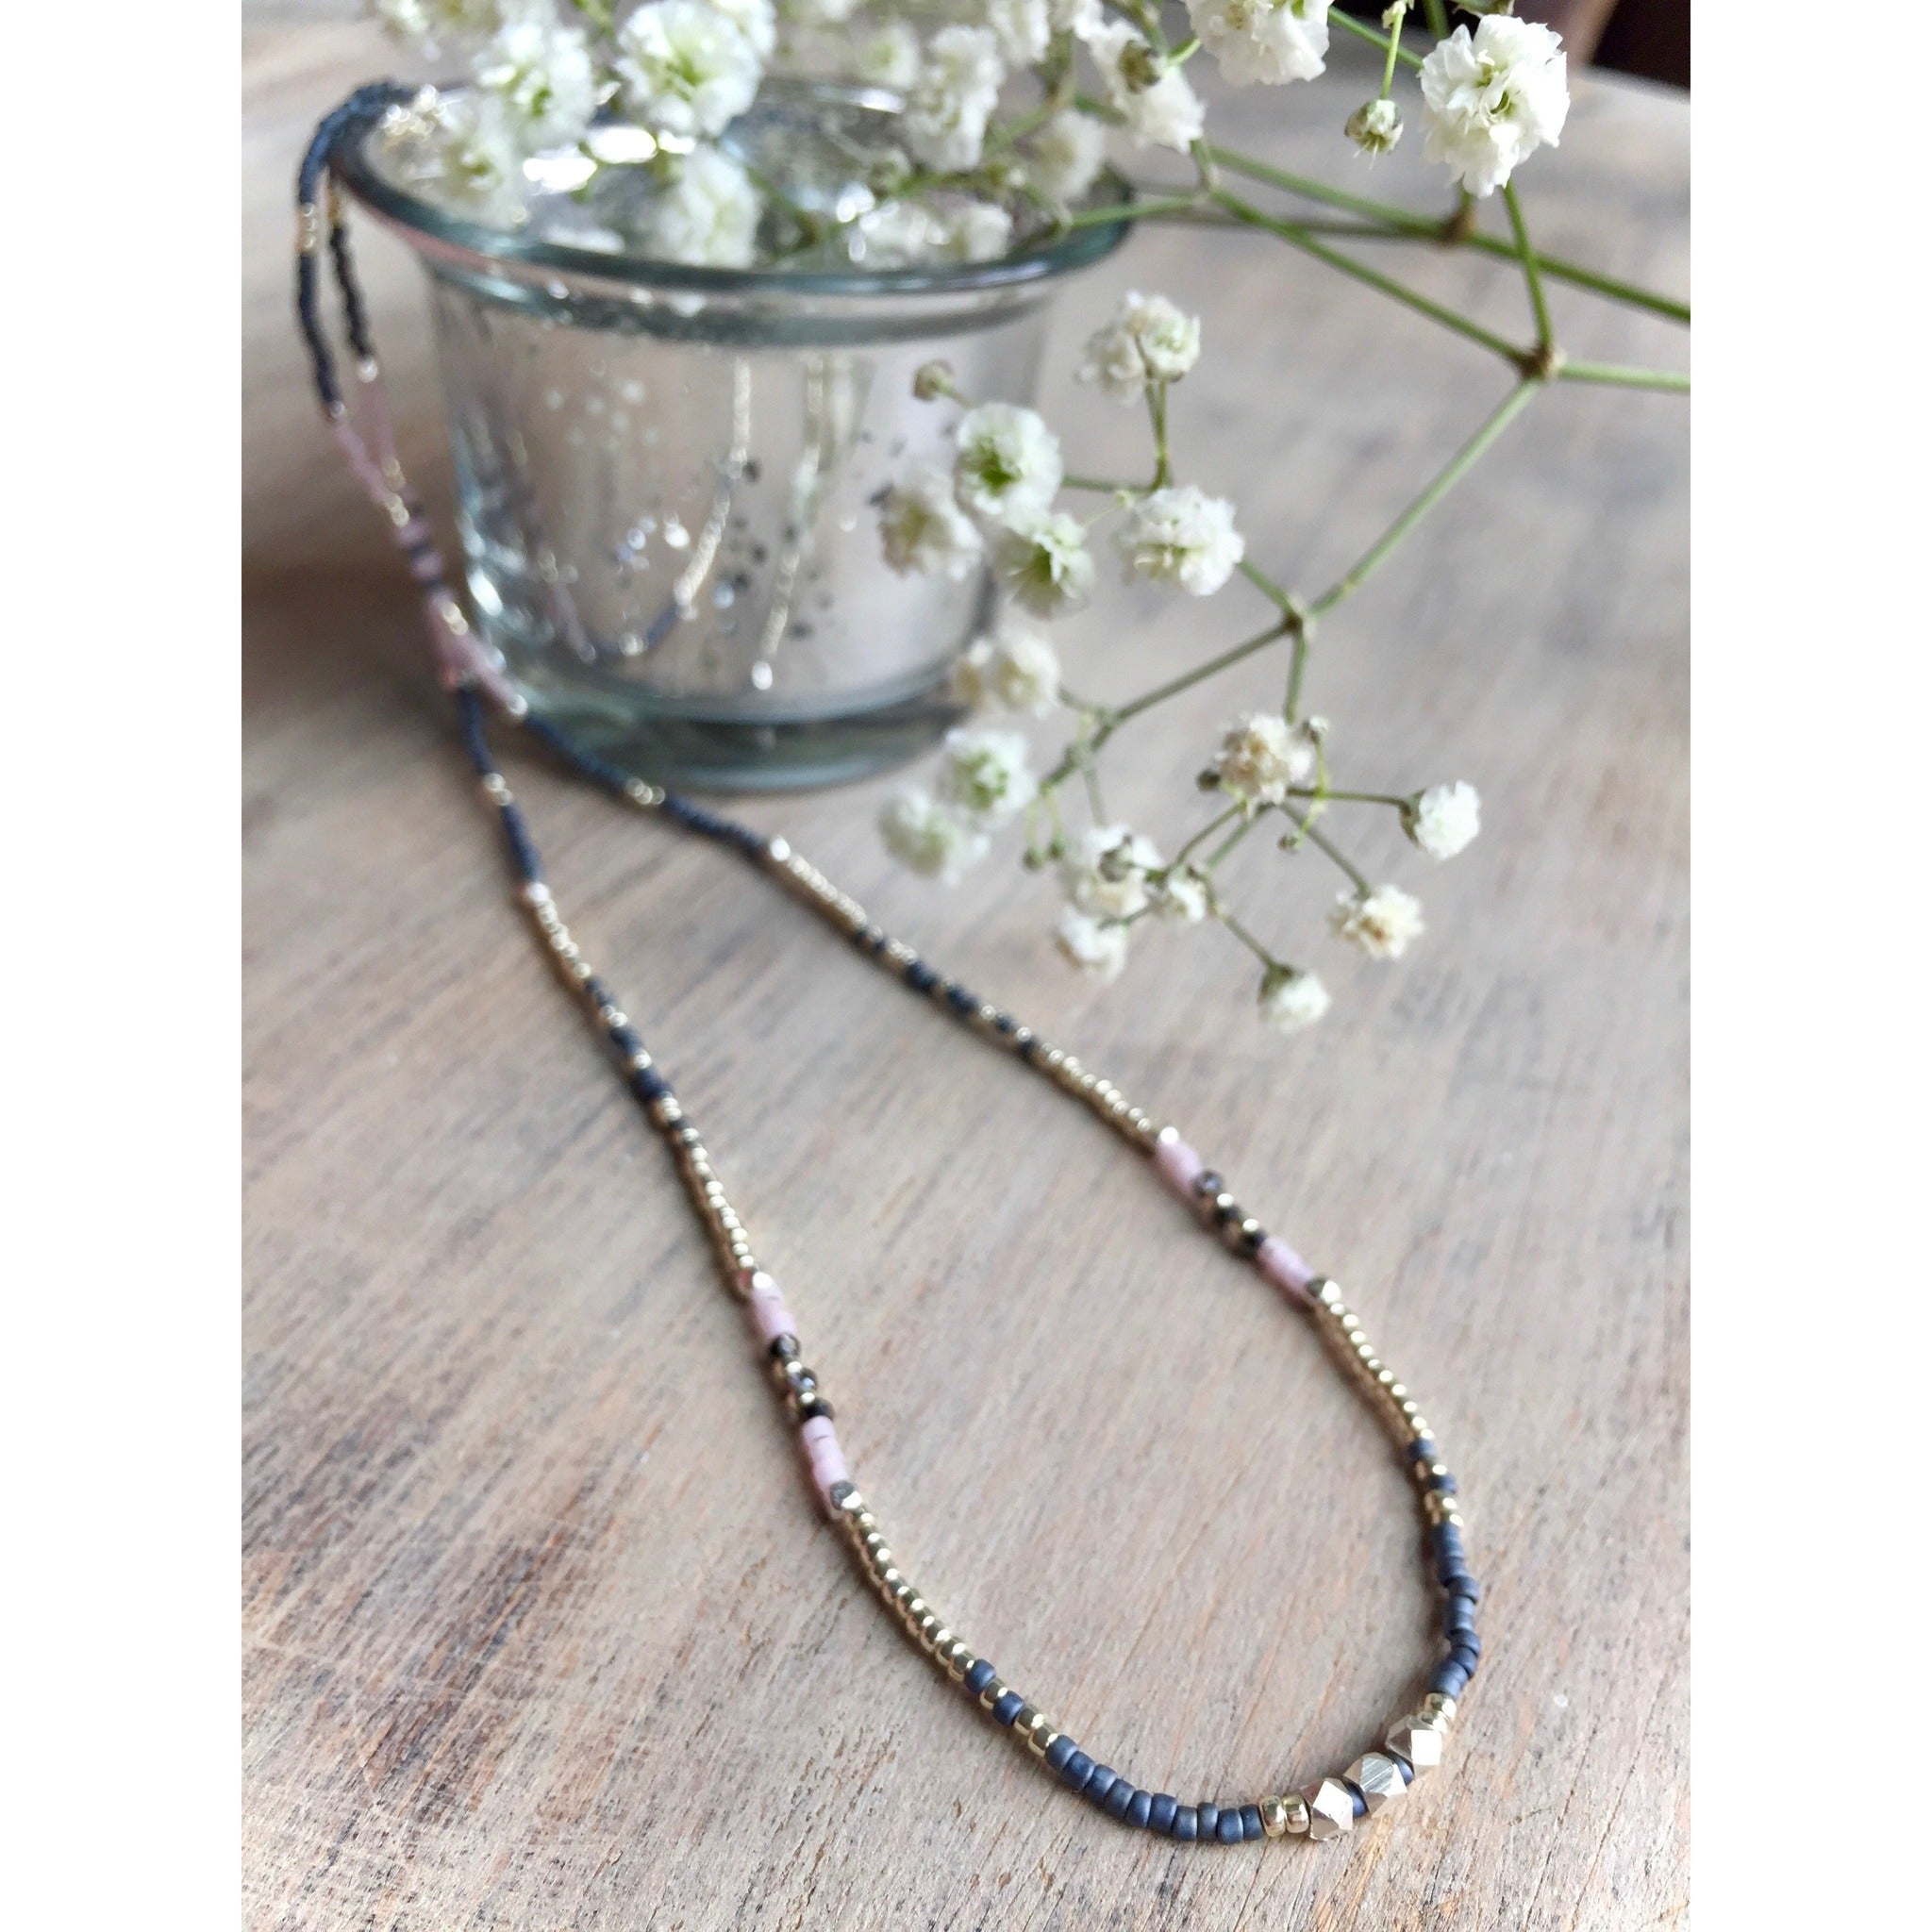 Bella Beaded Necklace - Nifty Sparkles